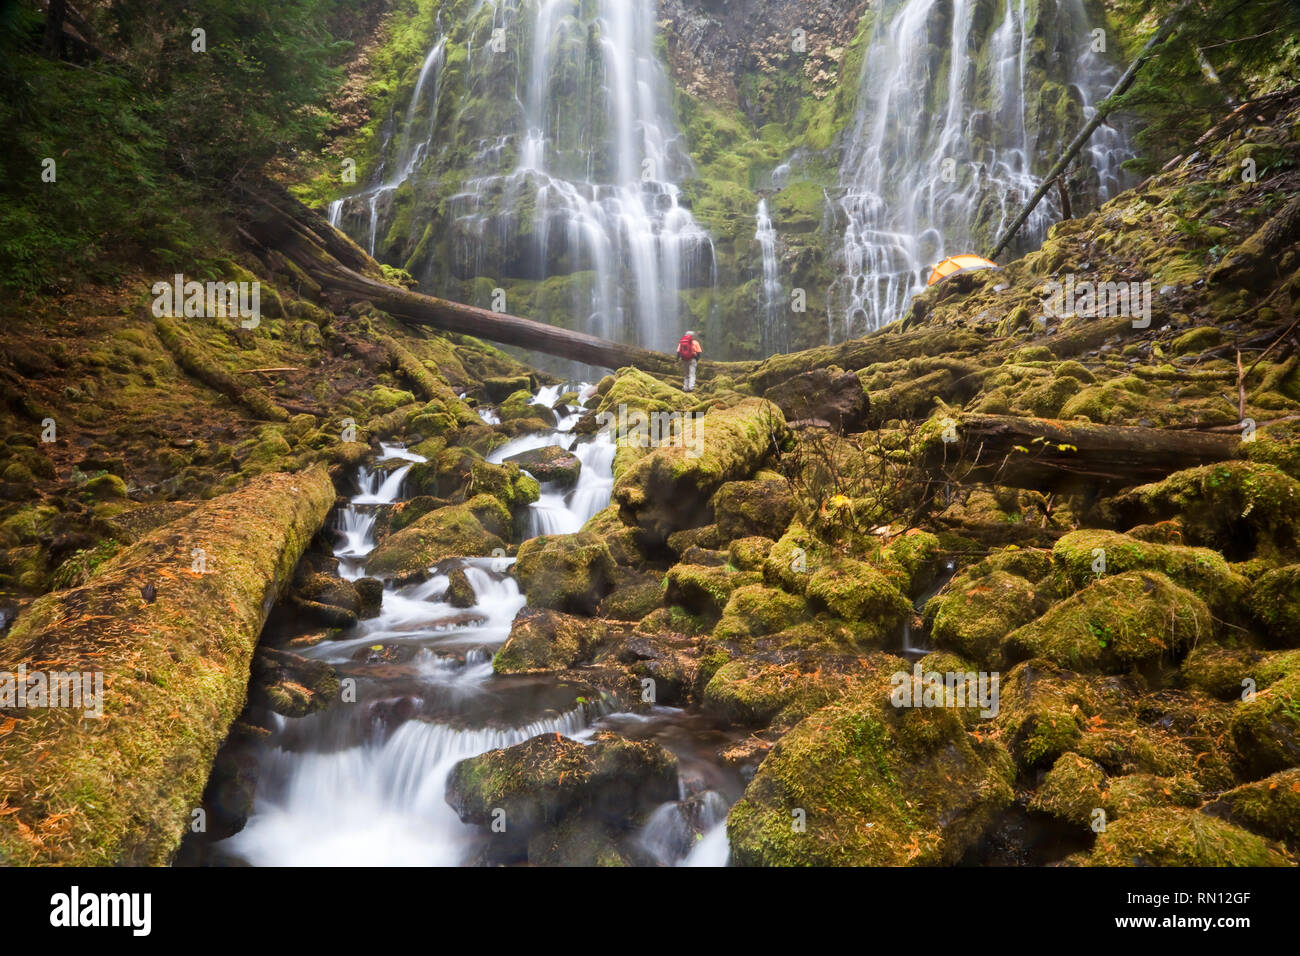 Hiker and Tent at Proxy Falls in Lane County Oregon Stock Photo